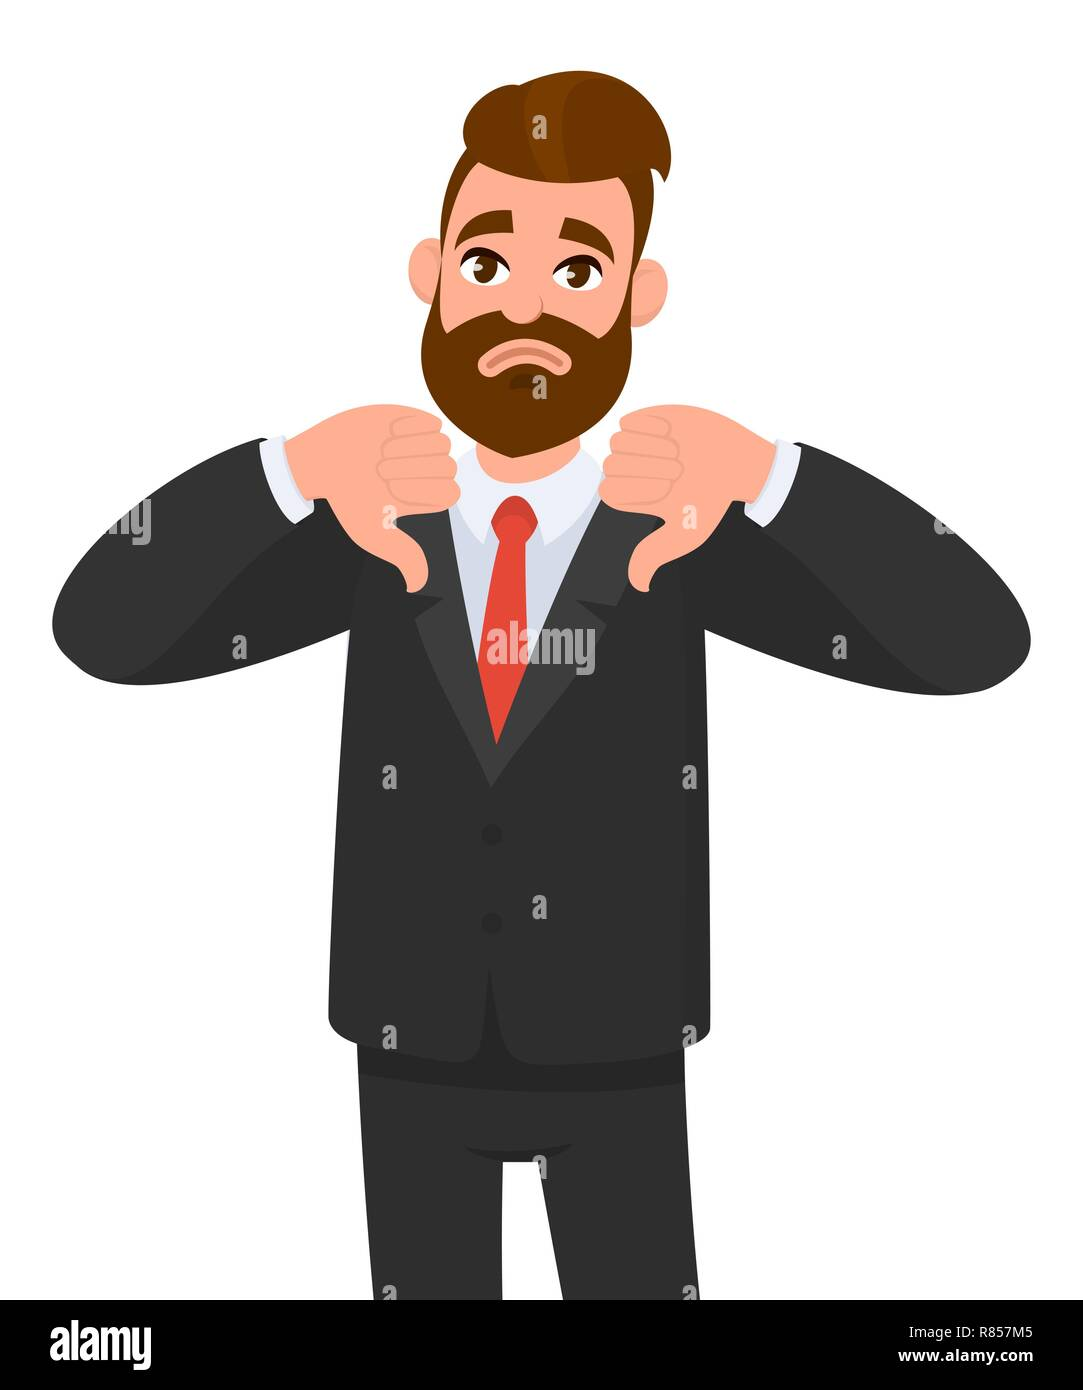 Young business man showing thumbs down sign, dislike, looks with negative expression and disapproval. Disagreement, disgust and negative expressions. - Stock Image